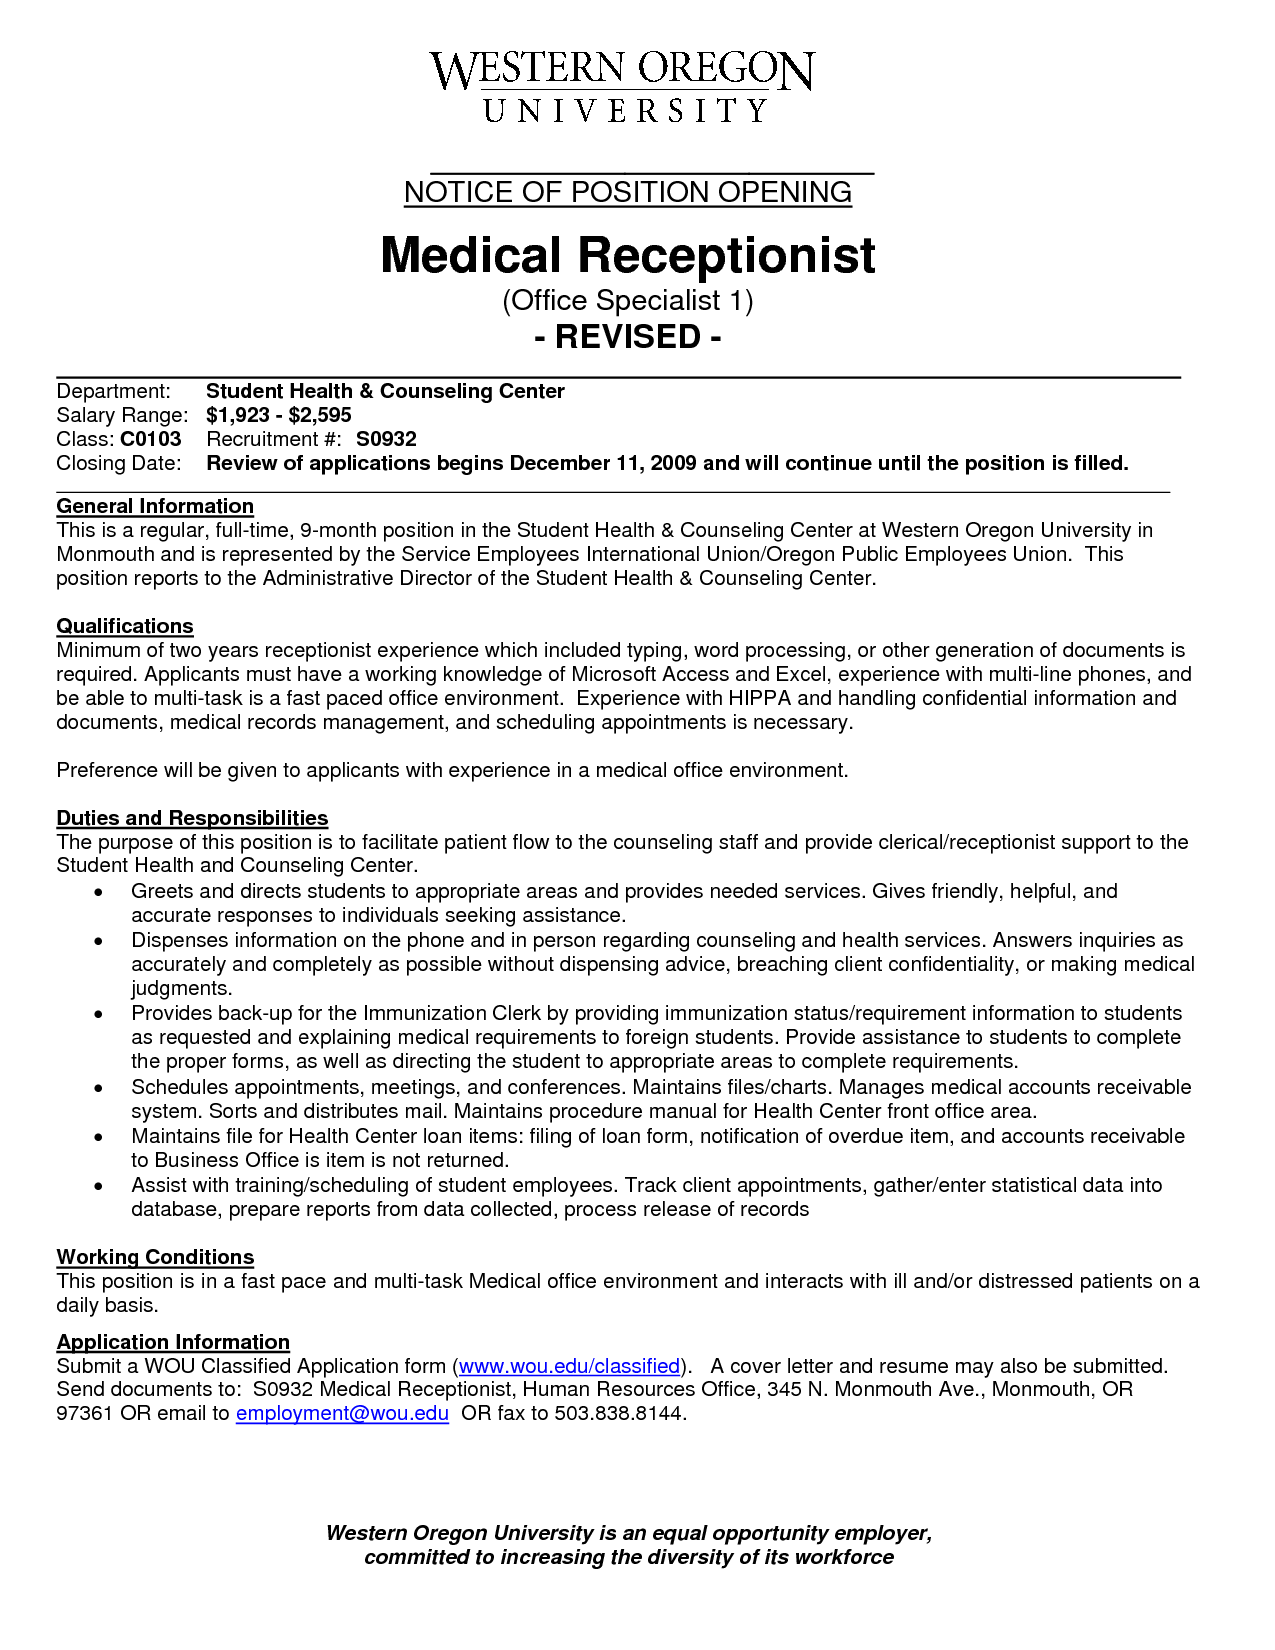 Medical Receptionist Resume With No Experience Http Www